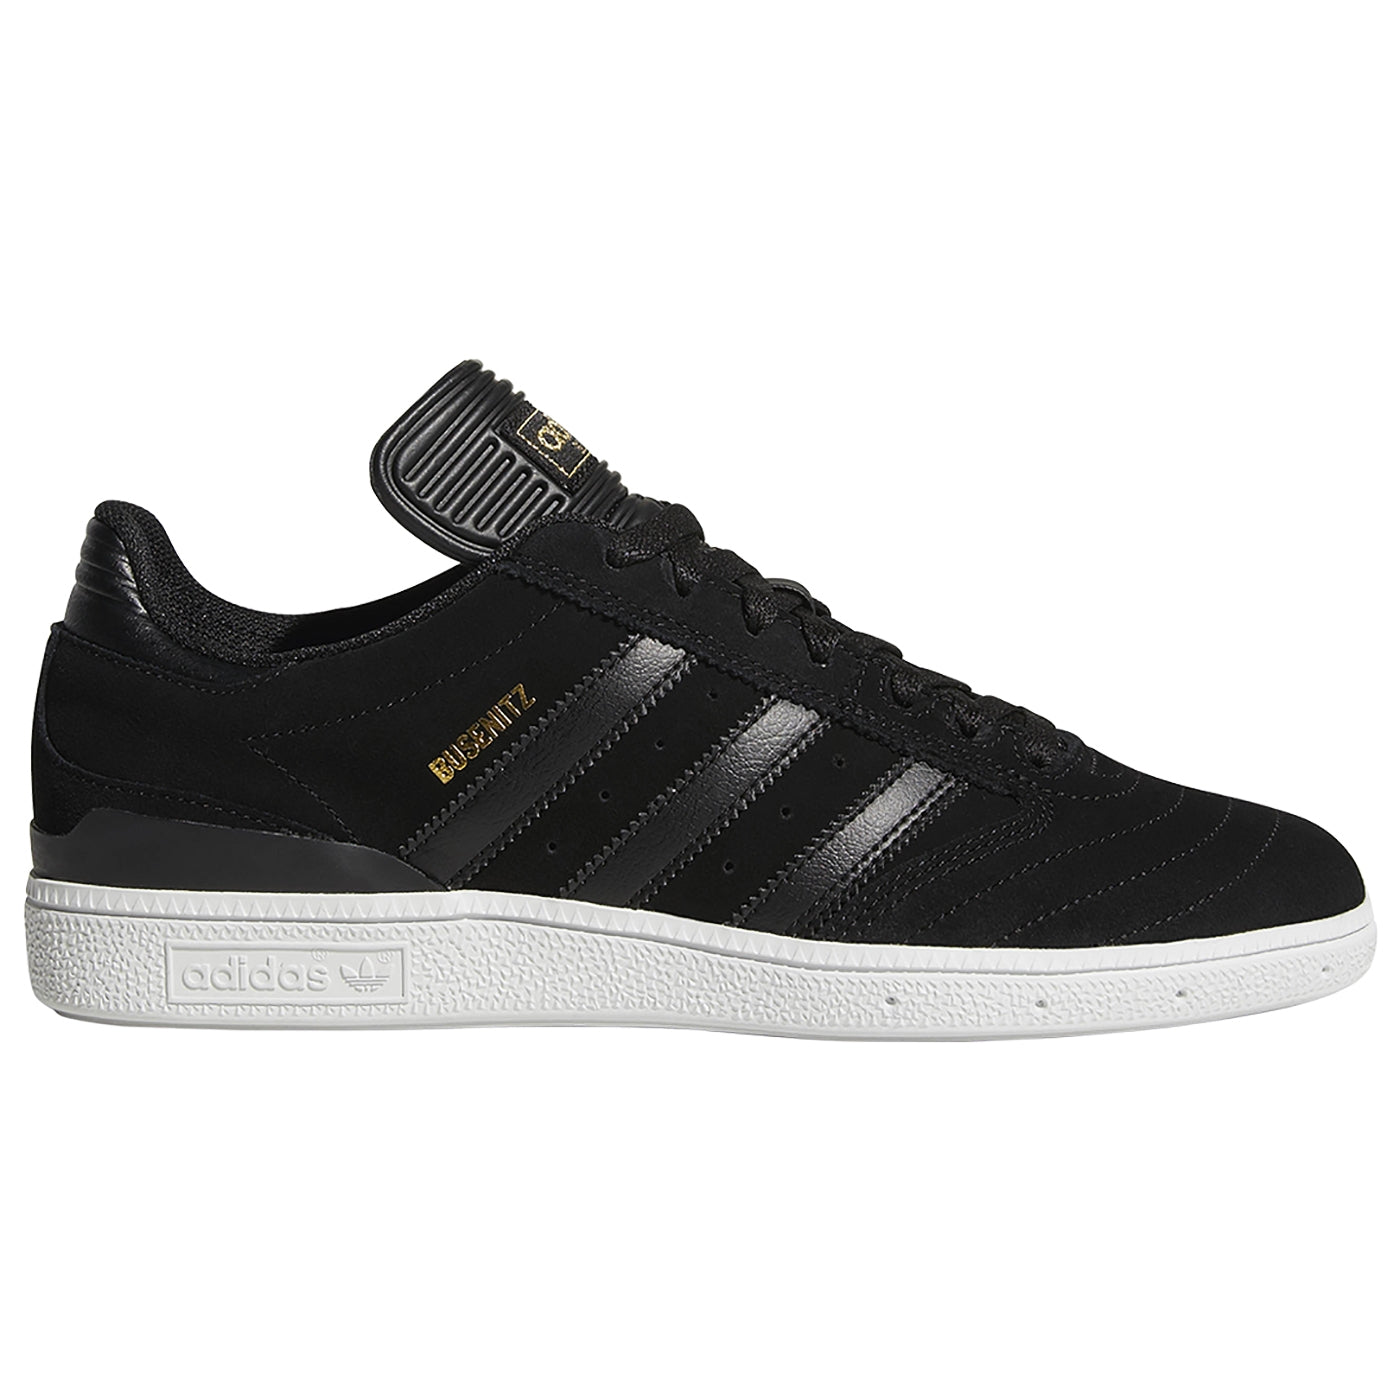 new concept aa6f5 310bd Adidas Busenitz Shoes - Core Black  Core Black  Footwear White